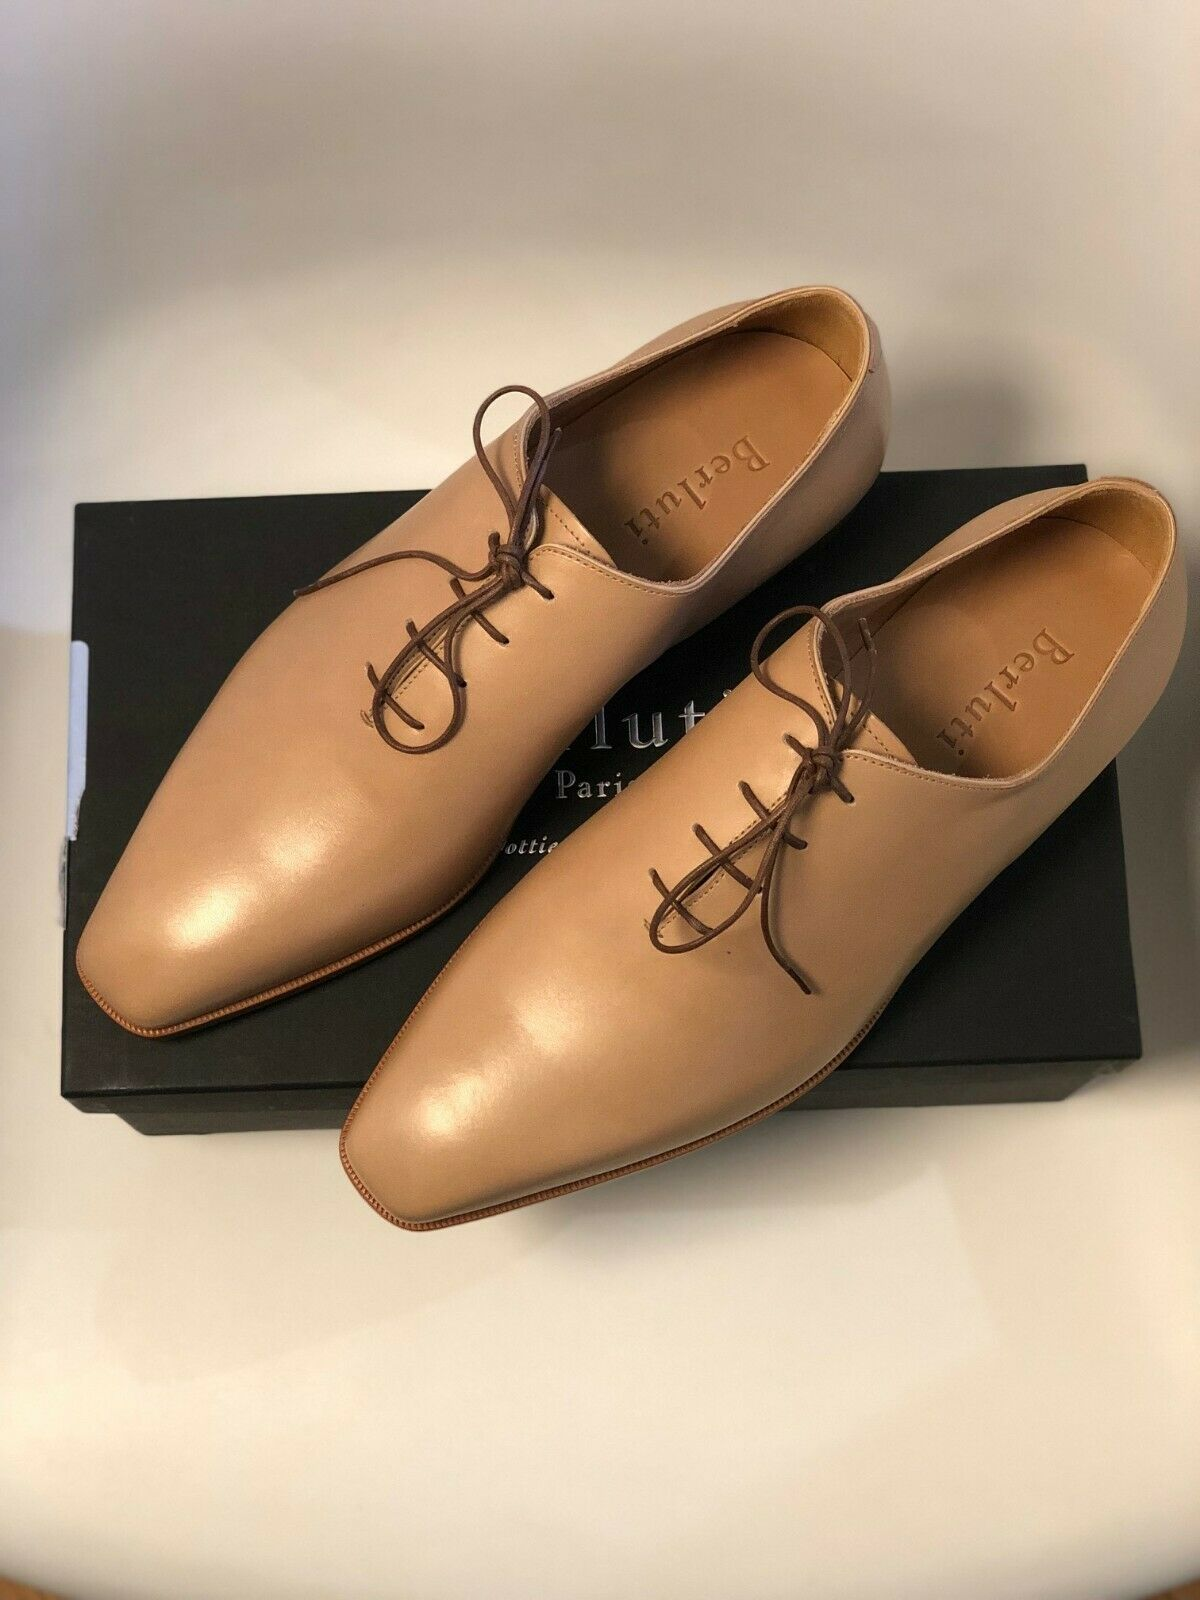 Berluti Neuf Alessandro Capri Venezia Leather Nature 7.5